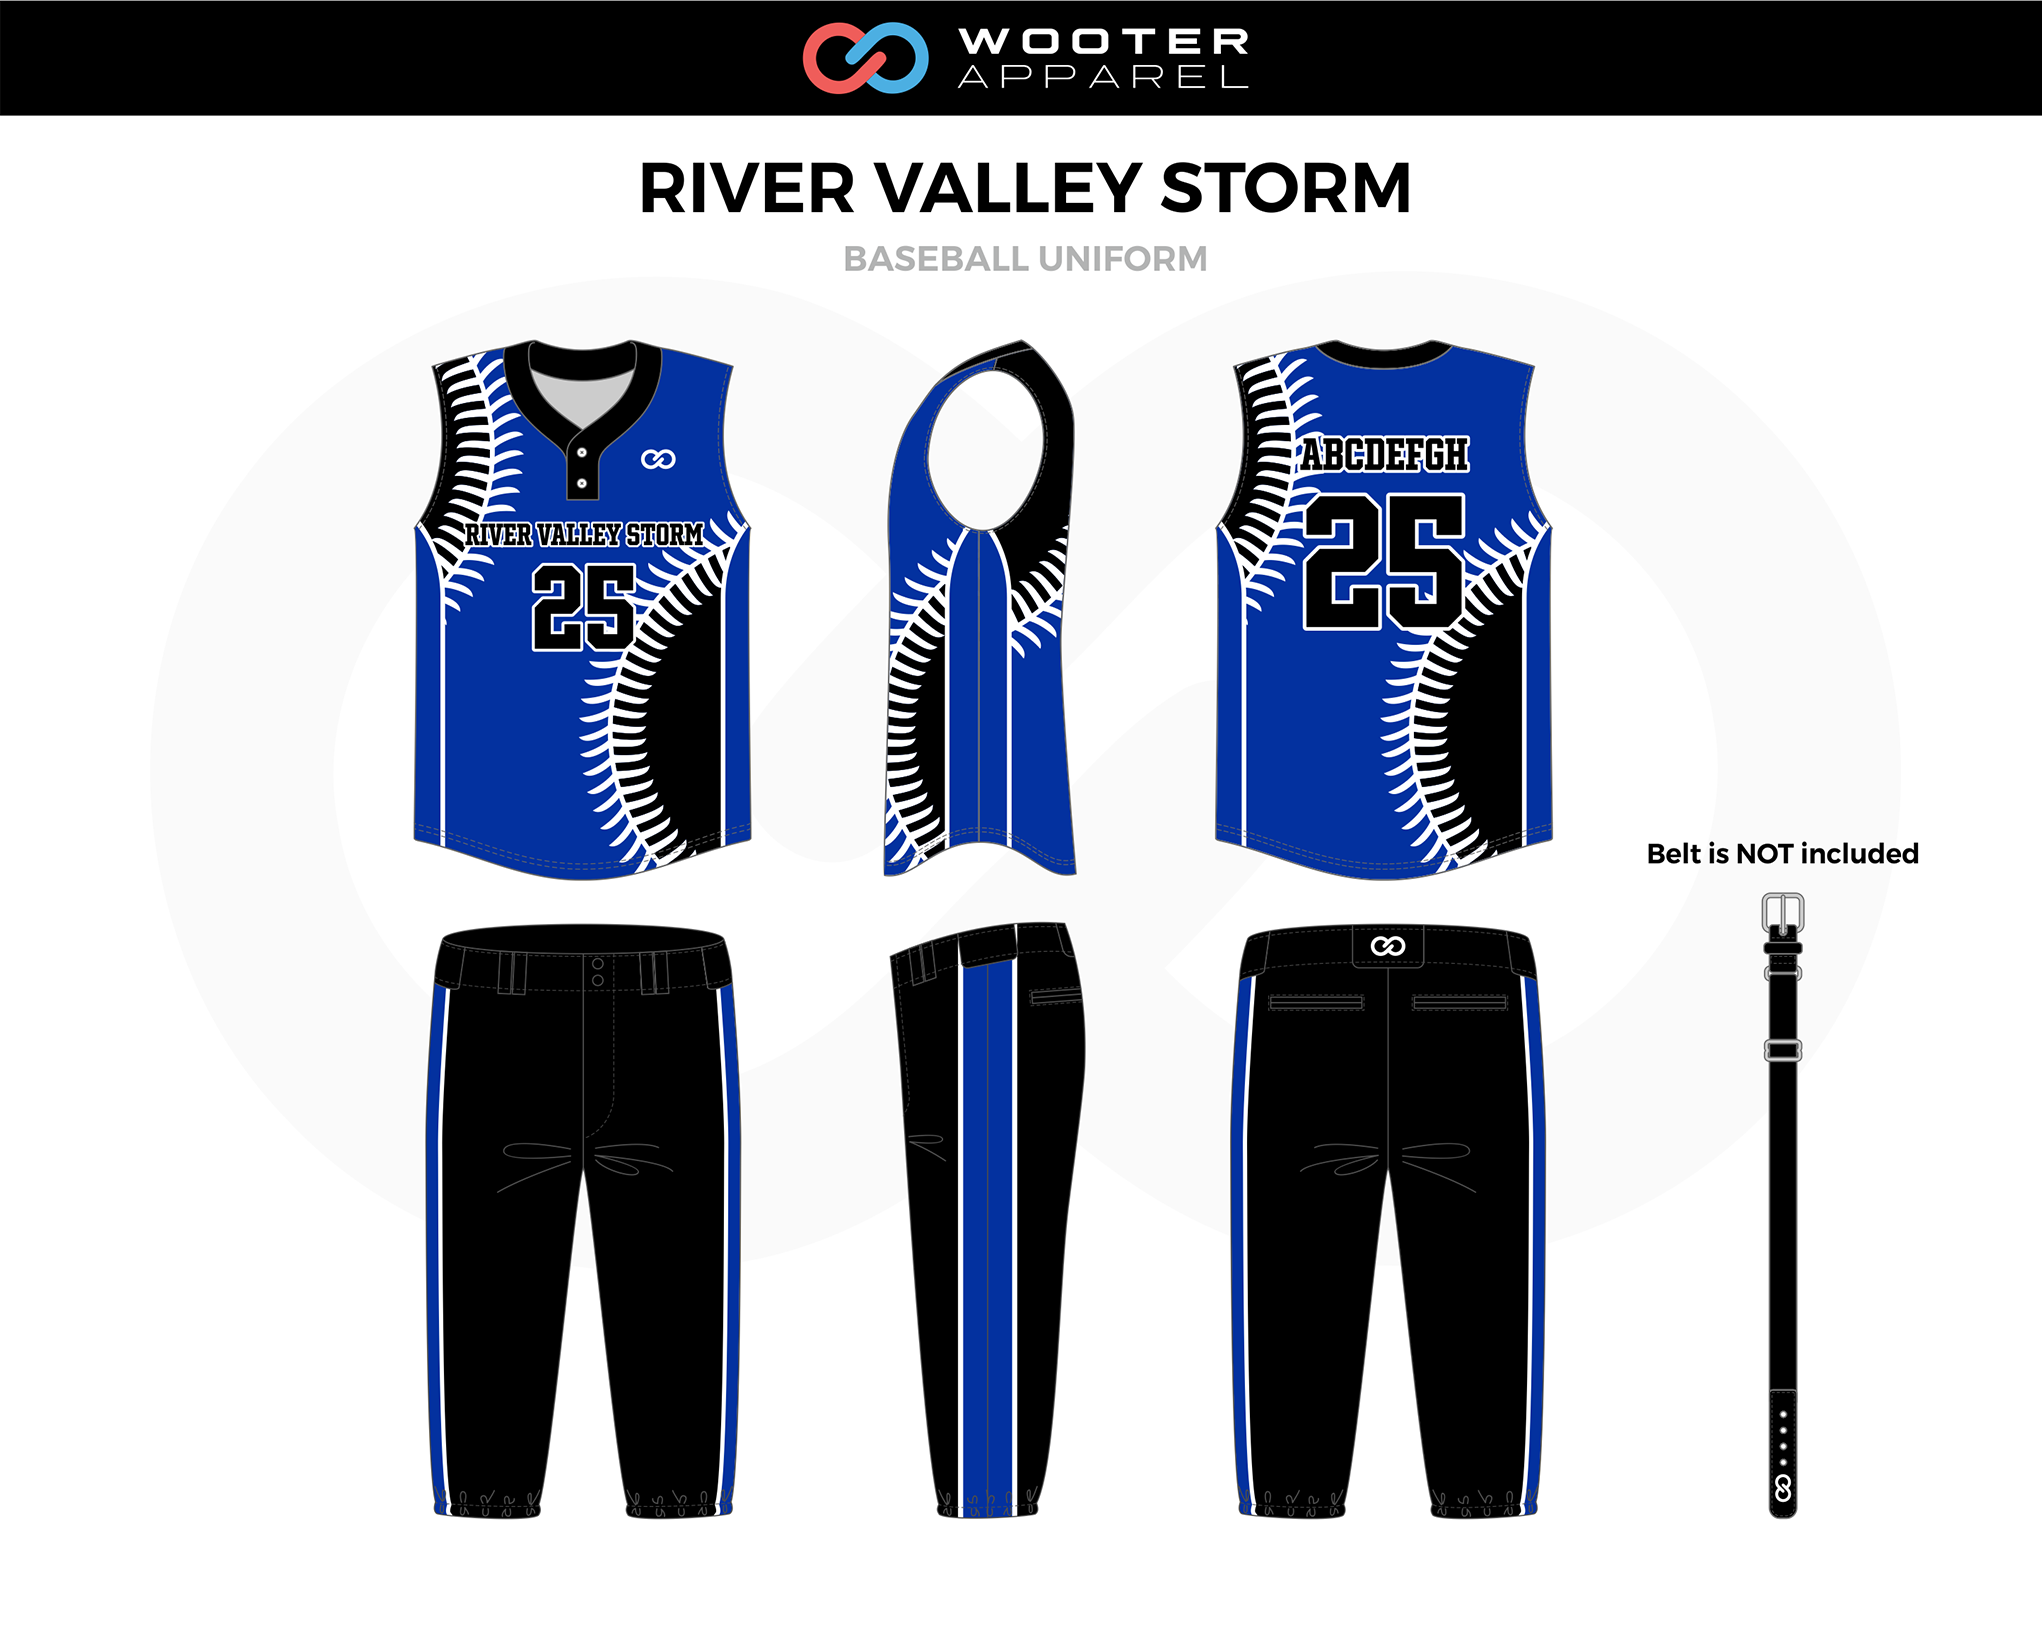 01_River Valley Storm Baseball.png